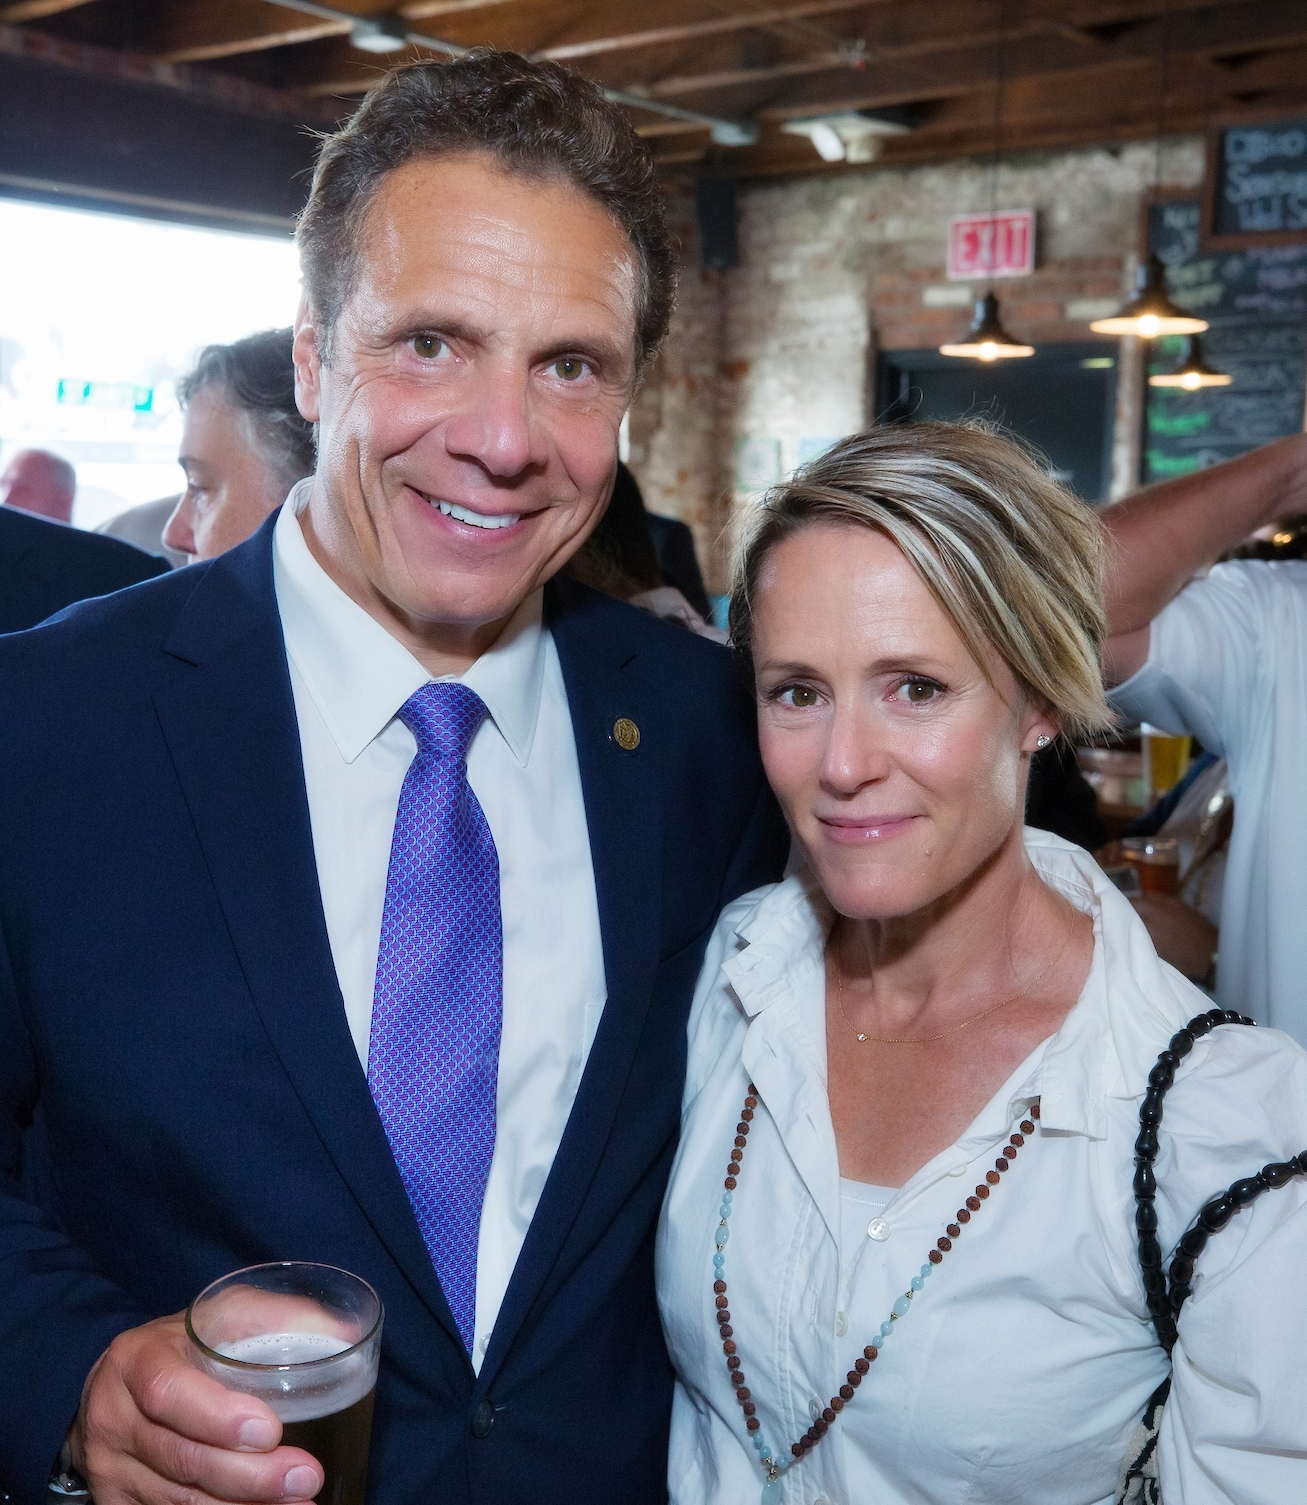 Pictured: New York State Governor Andrew M. Cuomo and Stockade Works founder Mary Stuart Masterson at Keegan Ales in Kingston. Photo by Philip Kamrass/ Office of Governor Andrew M. Cuomo.